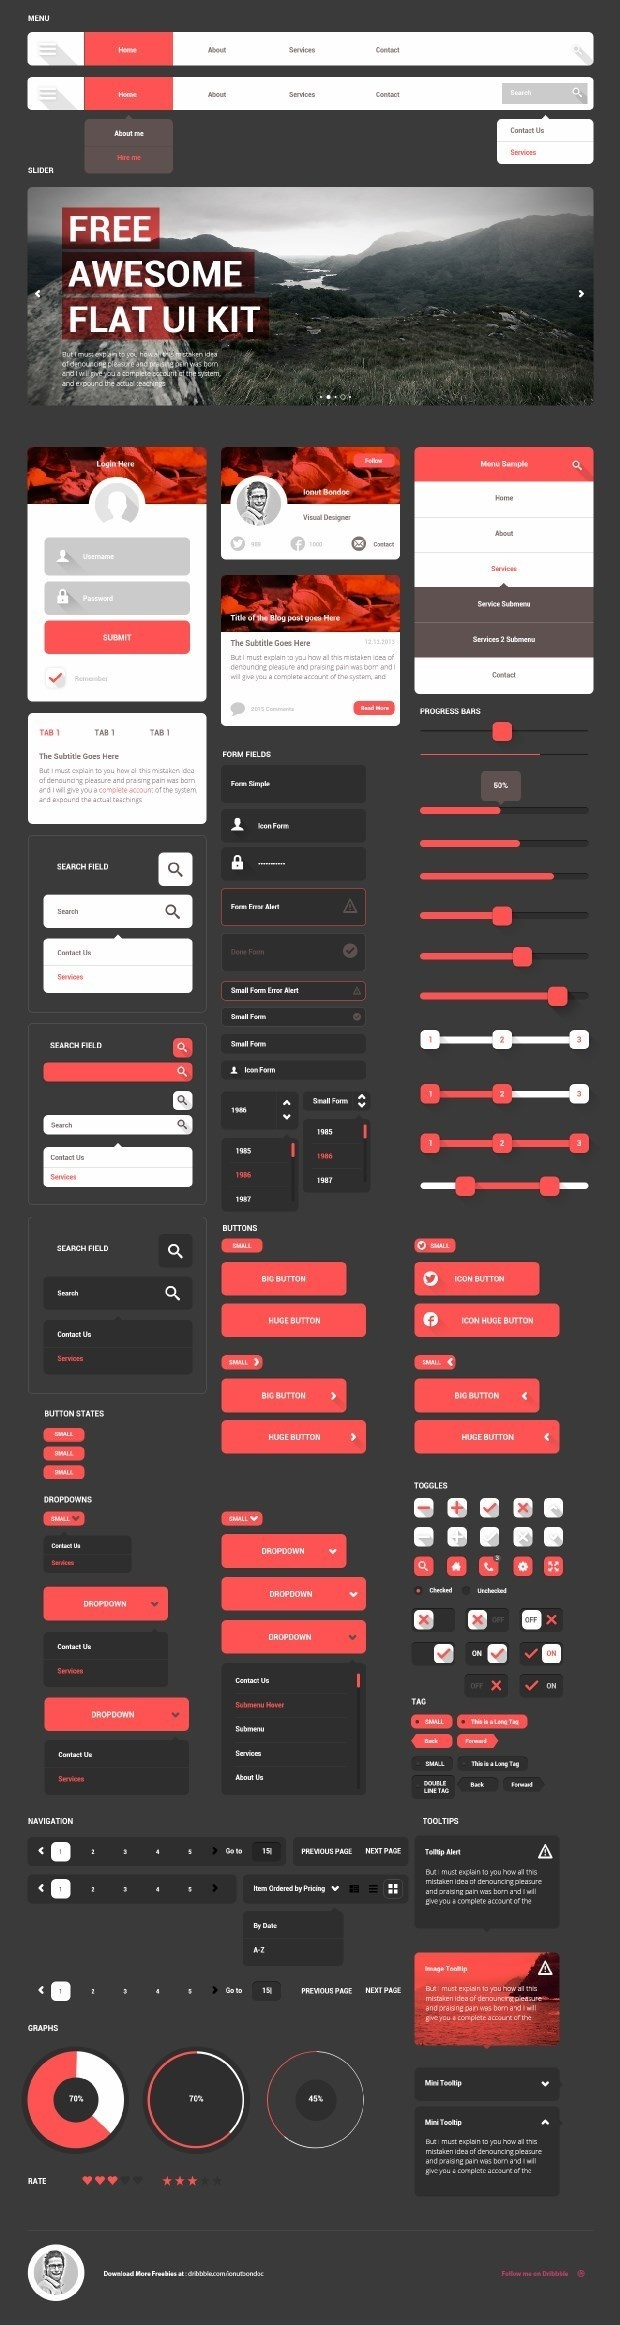 free_ui_kits_for_designers_06 #dashboard